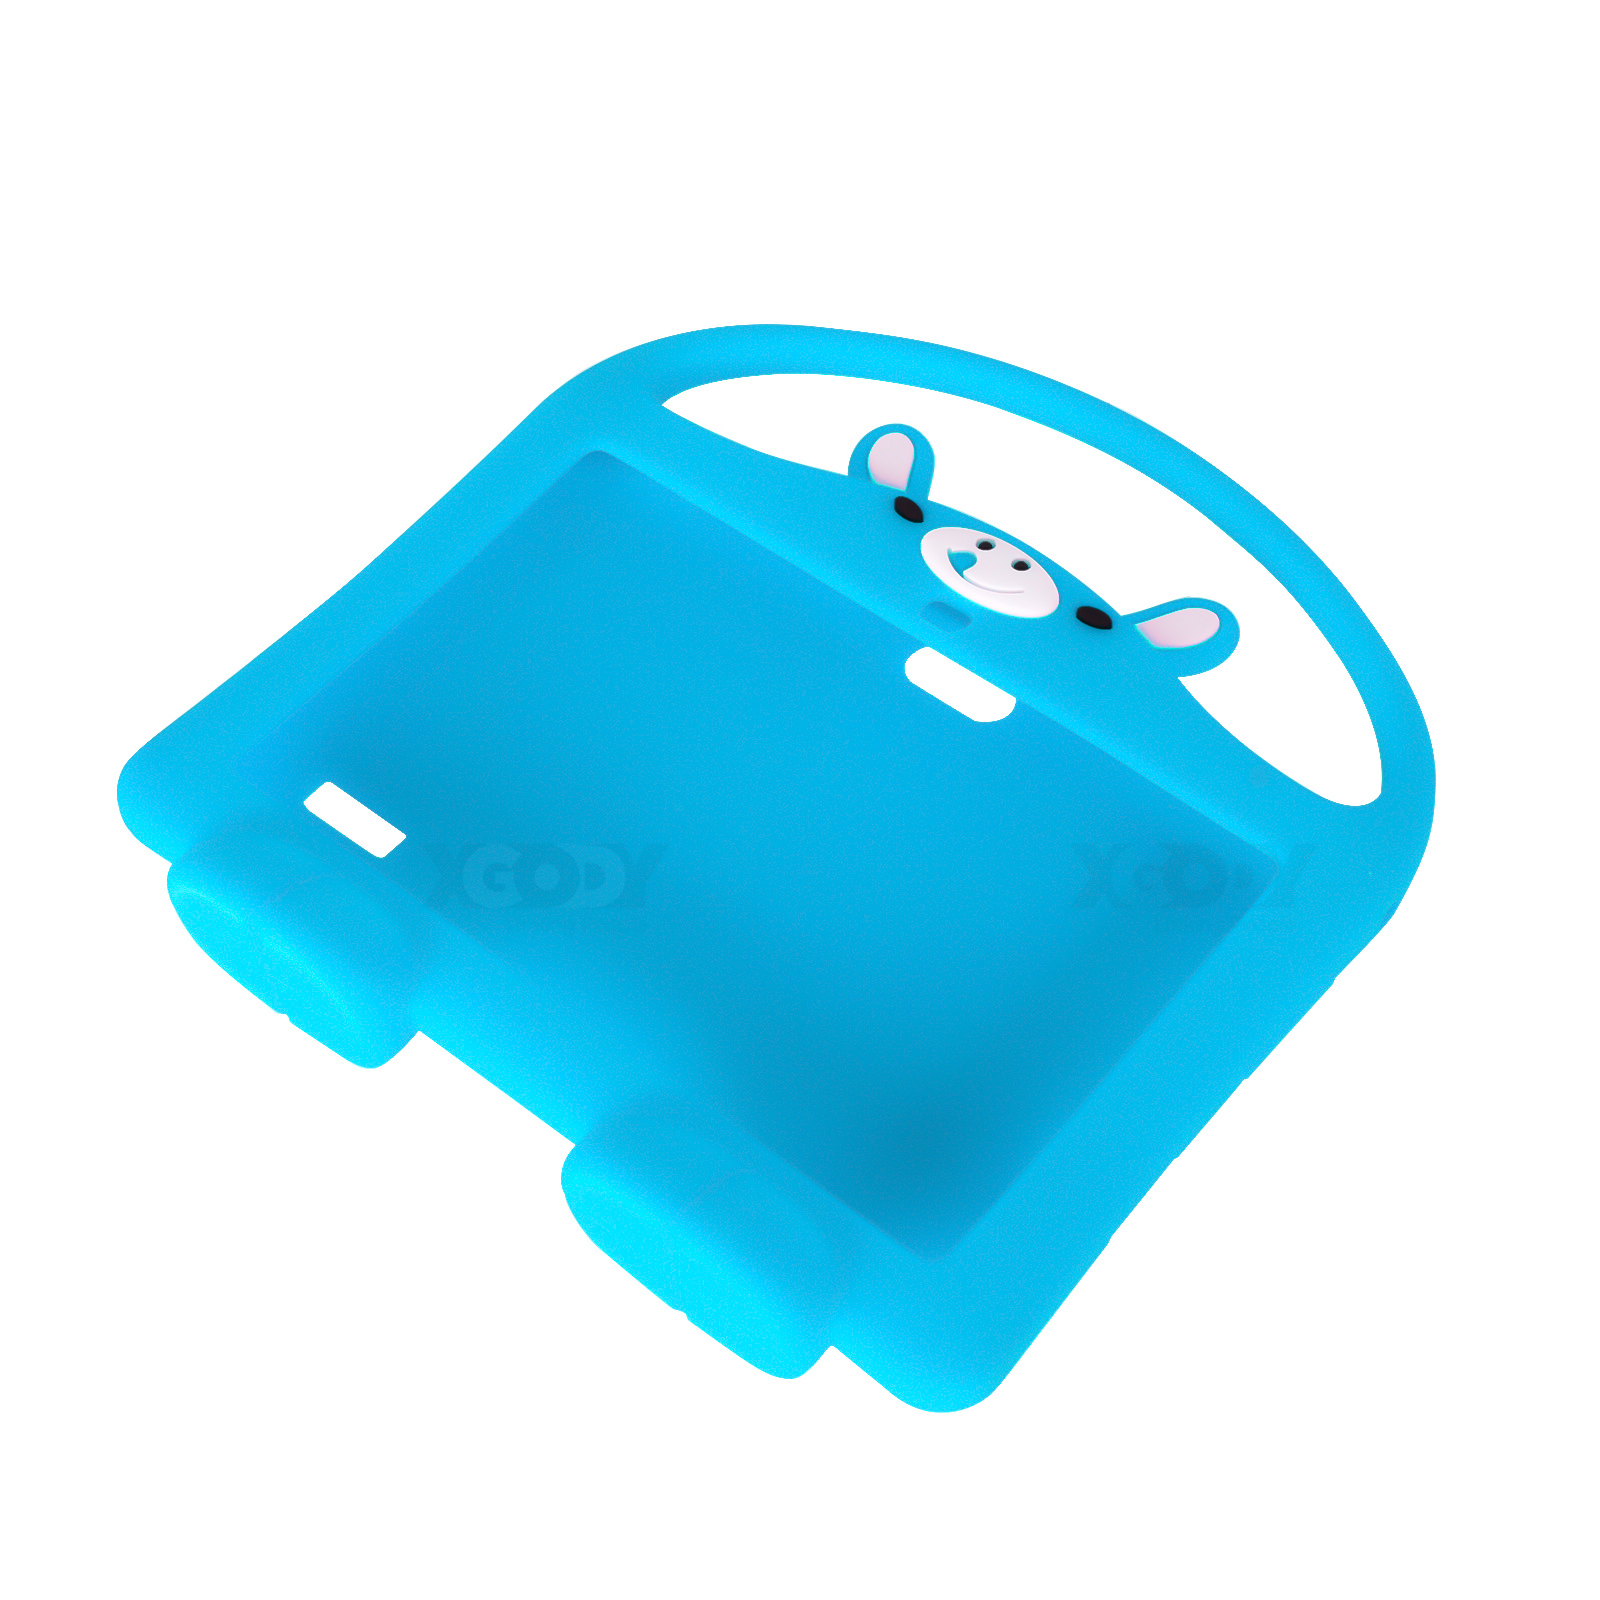 miniature 16 - Silicone Case Cover For 7 inch Android Tablet Waterproof Shockproof high quality